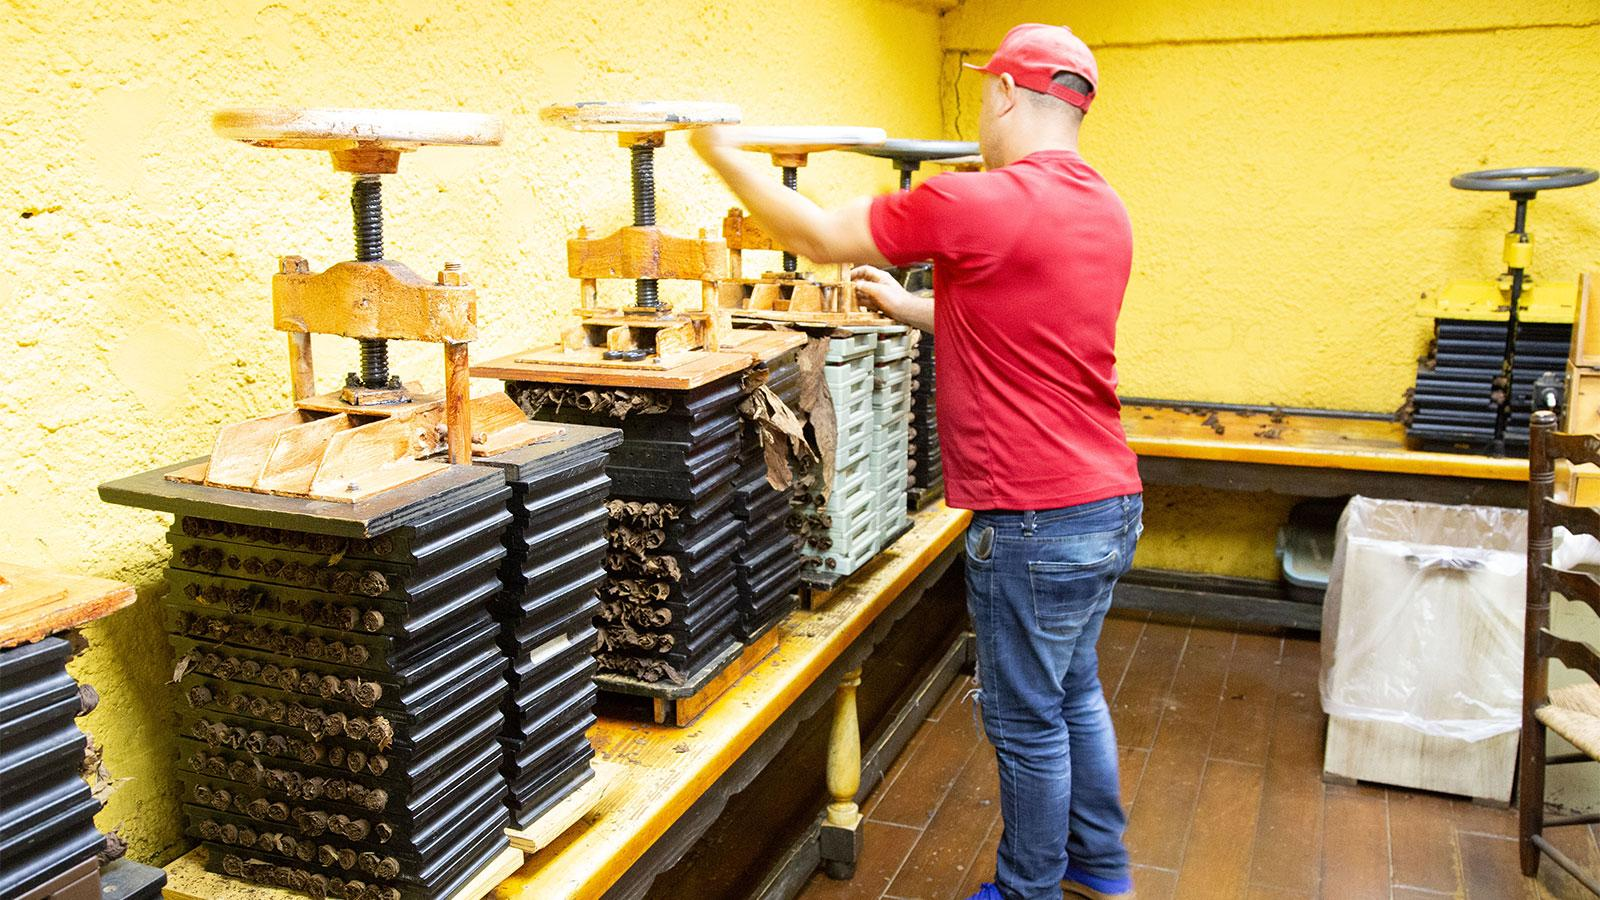 A factory worker loosening a vice before rotating the cigars inside the molds that are being compressed.